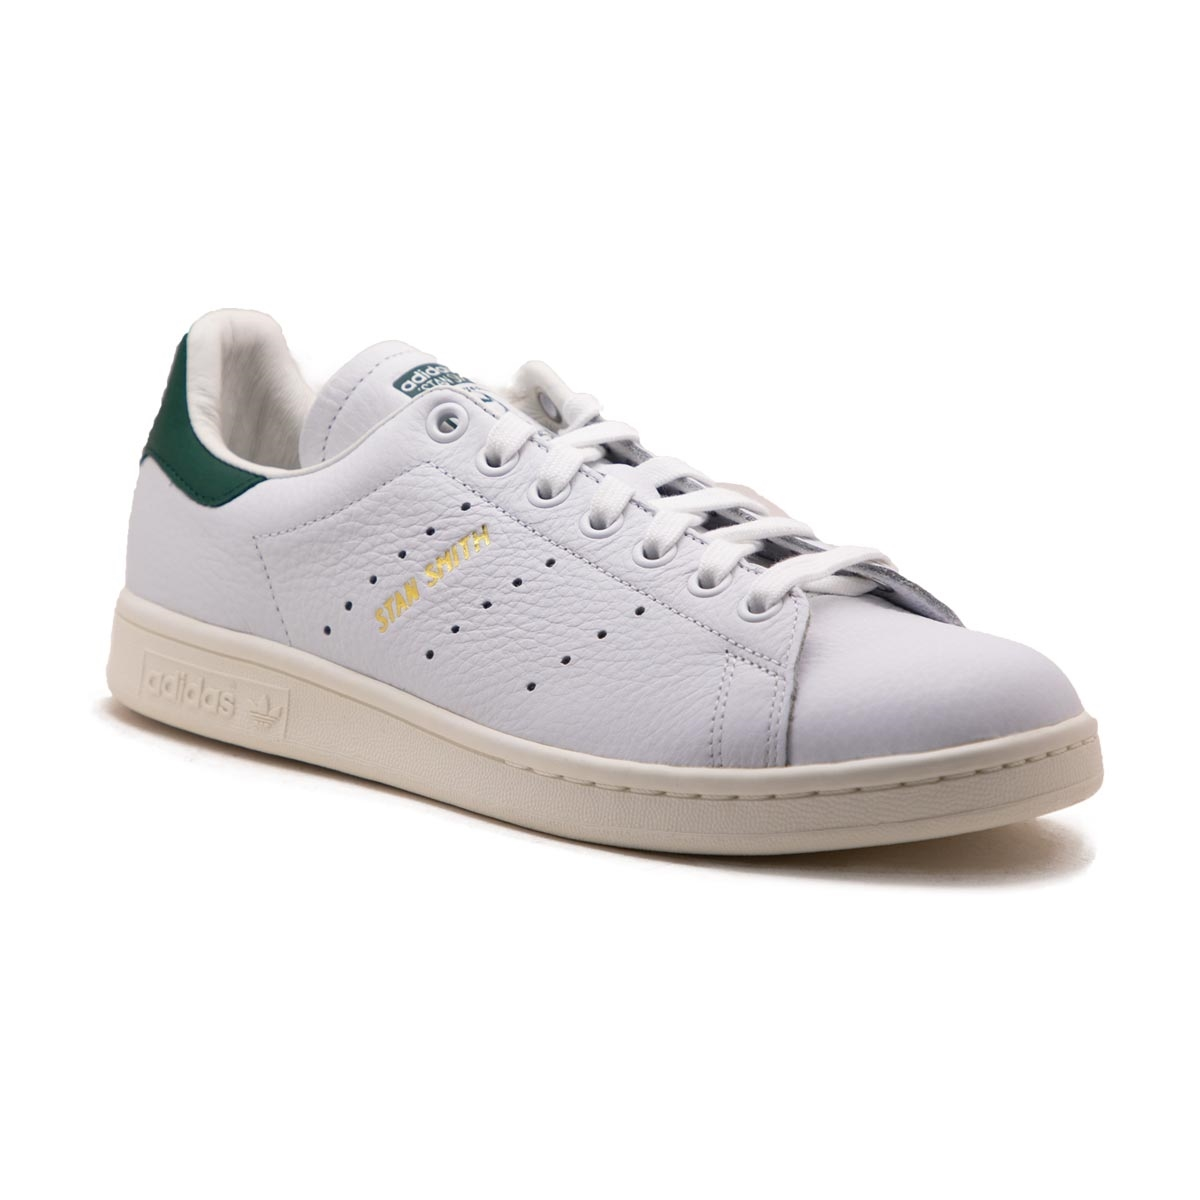 finest selection 9aa87 60dea Sneakers Adidas Stan Smith Premium White Green CQ2871 ...